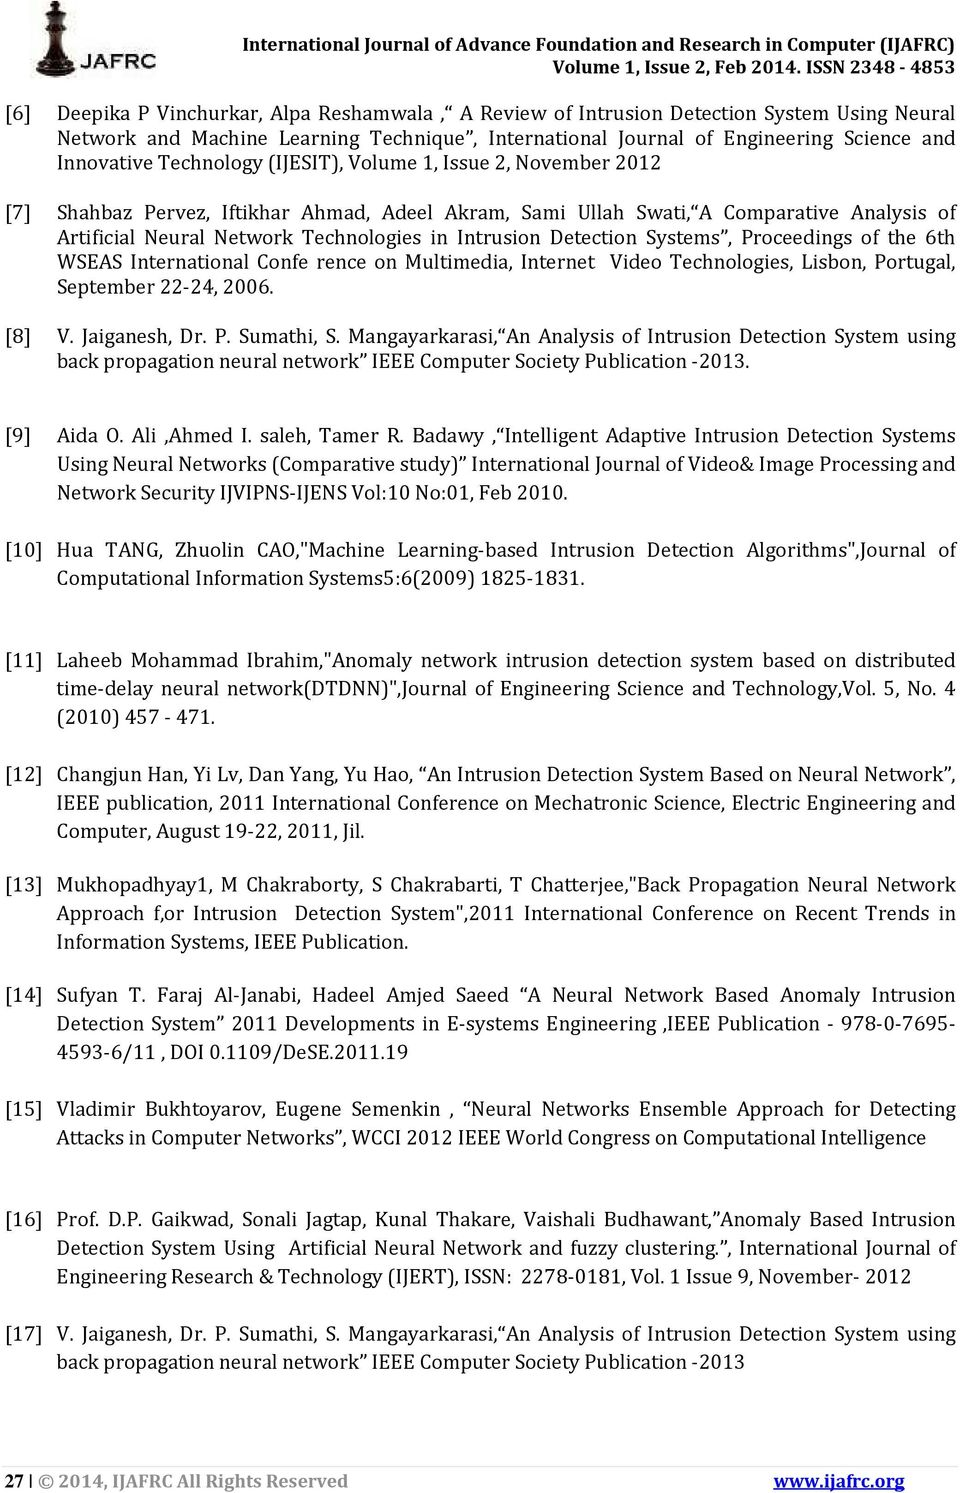 Detection Systems, Proceedings of the 6th WSEAS International Confe rence on Multimedia, Internet Video Technologies, Lisbon, Portugal, September 22-24, 2006. [8] V. Jaiganesh, Dr. P. Sumathi, S.